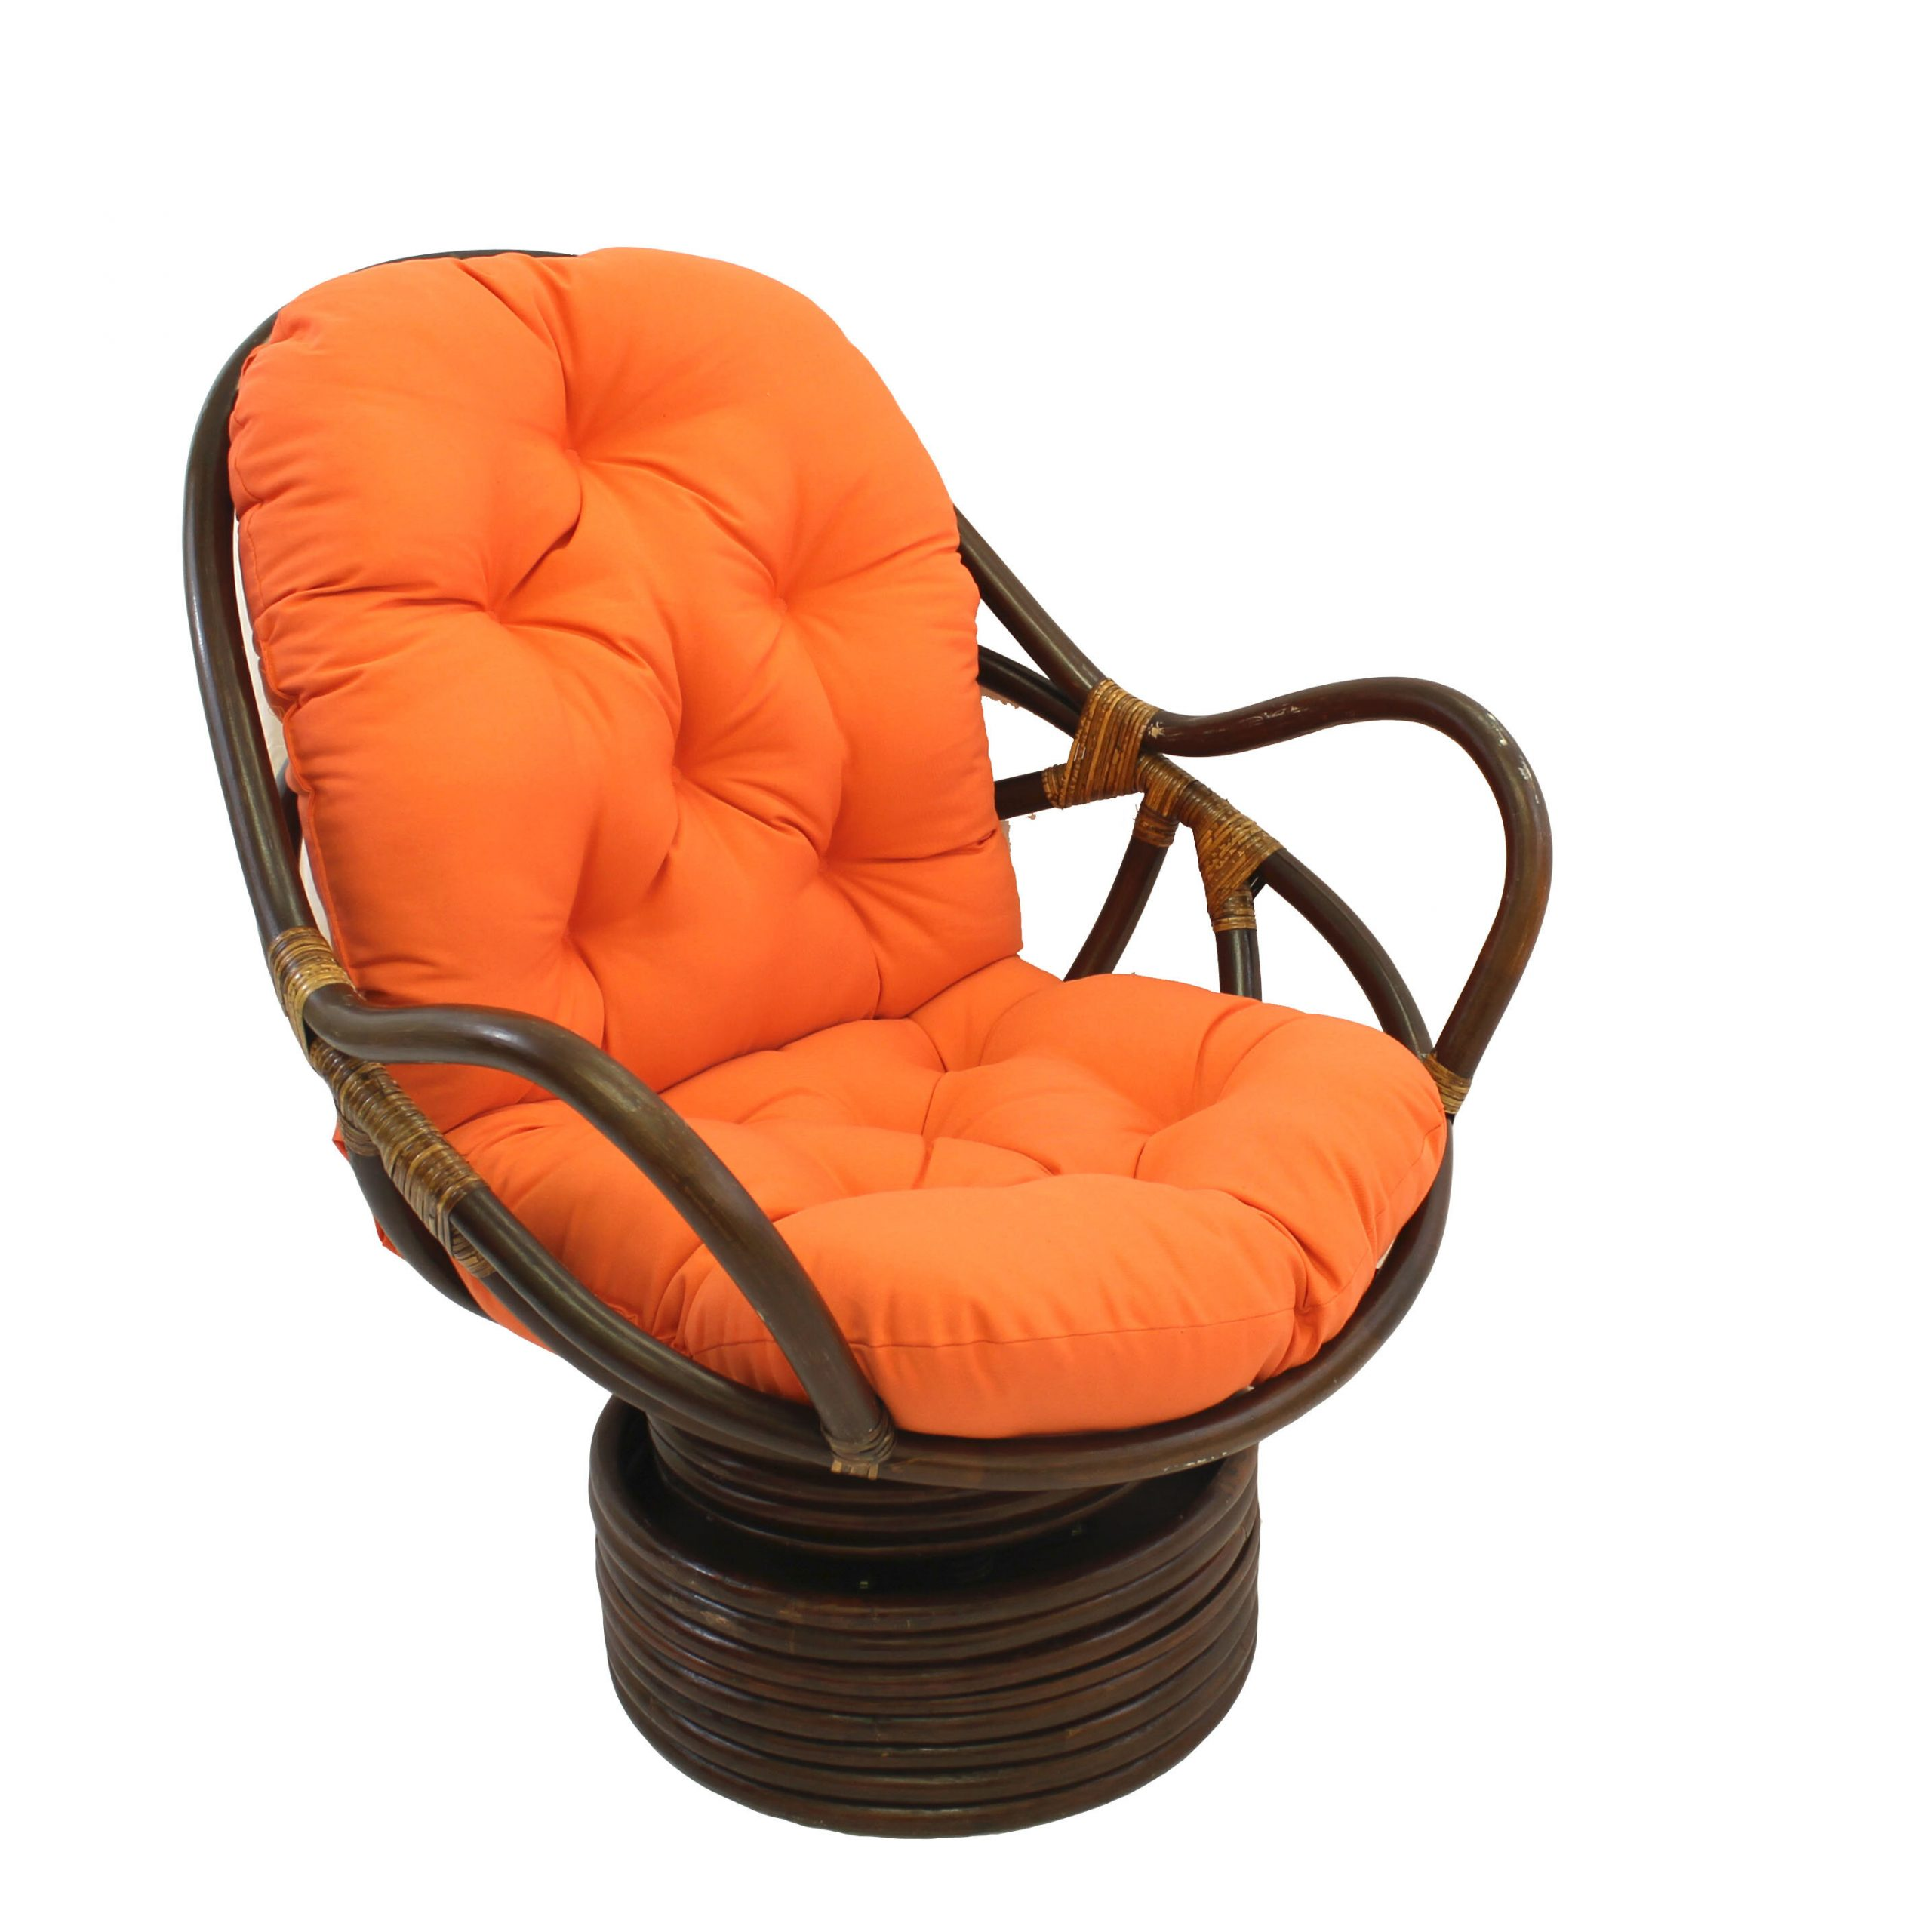 Brown Orange Accent Chairs You'Ll Love In 2021 | Wayfair Regarding Artressia Barrel Chairs (View 5 of 15)